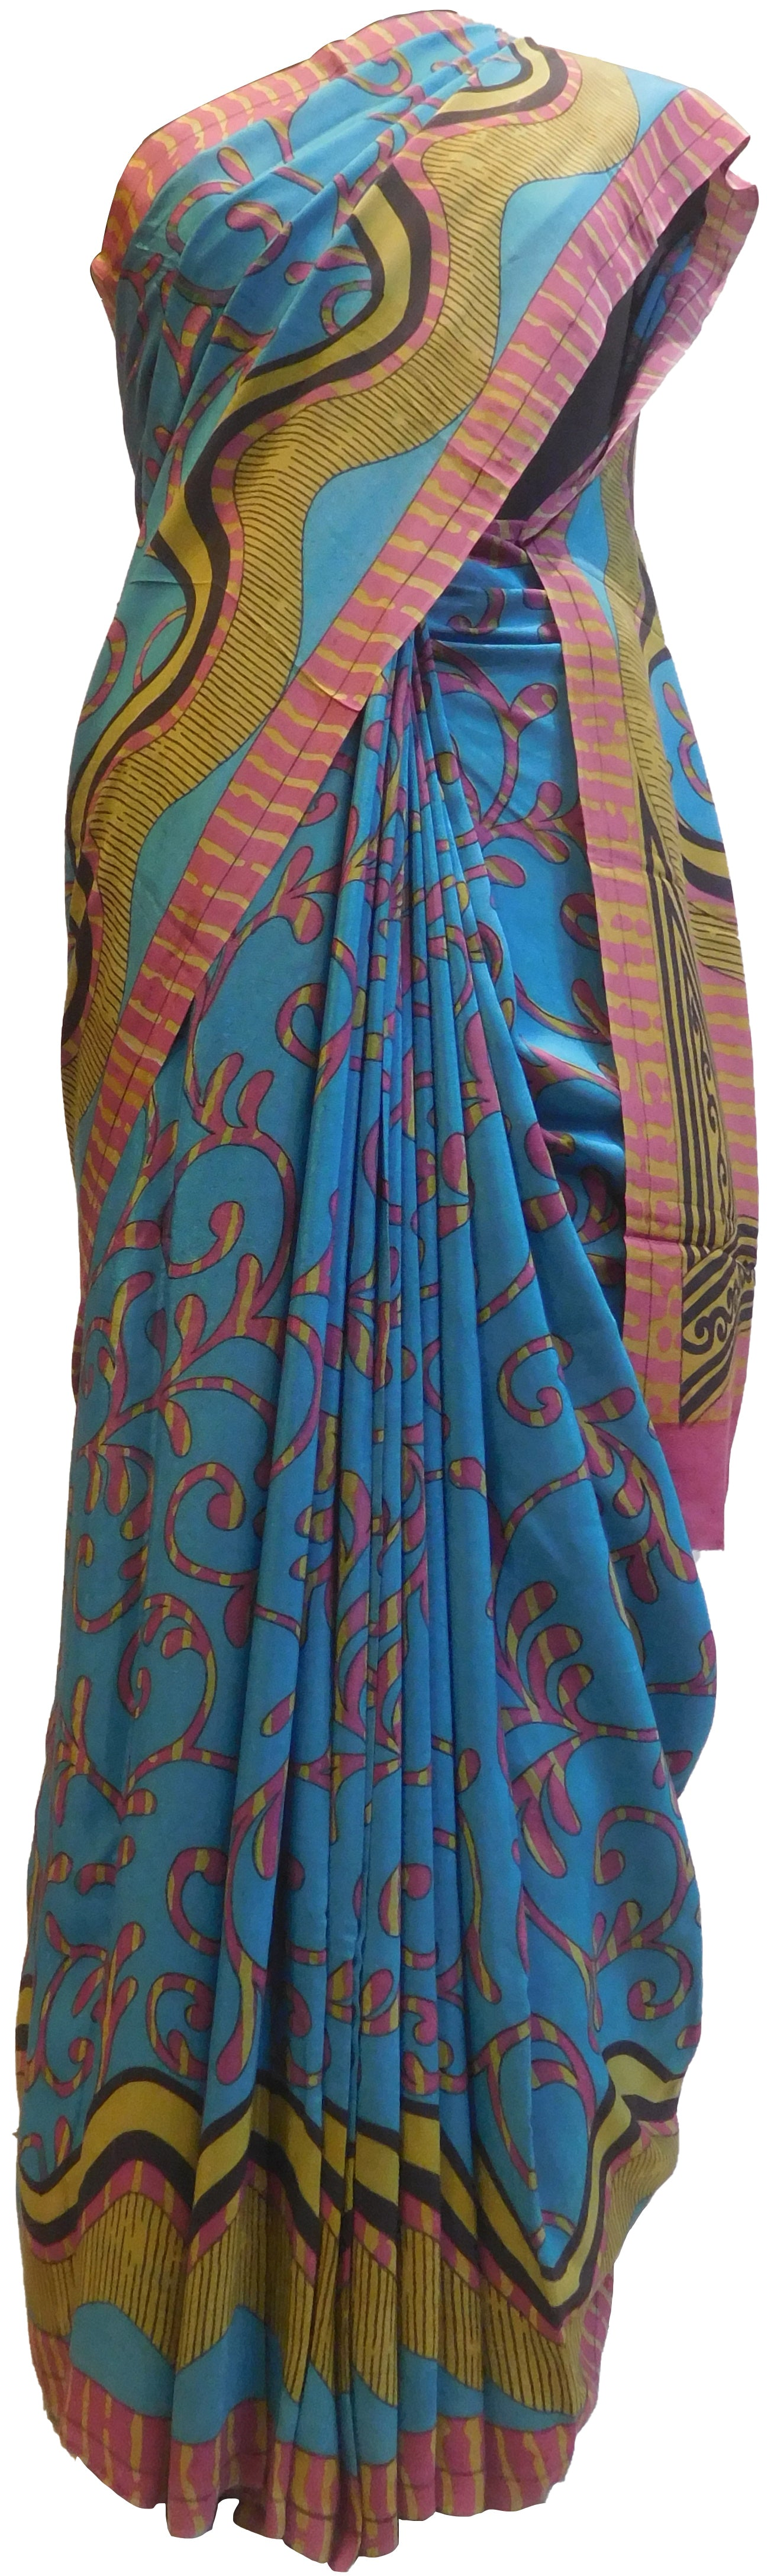 Multicolor Designer Wedding Partywear Pure Crepe Hand Brush Reprinted Kolkata Saree Sari RP109